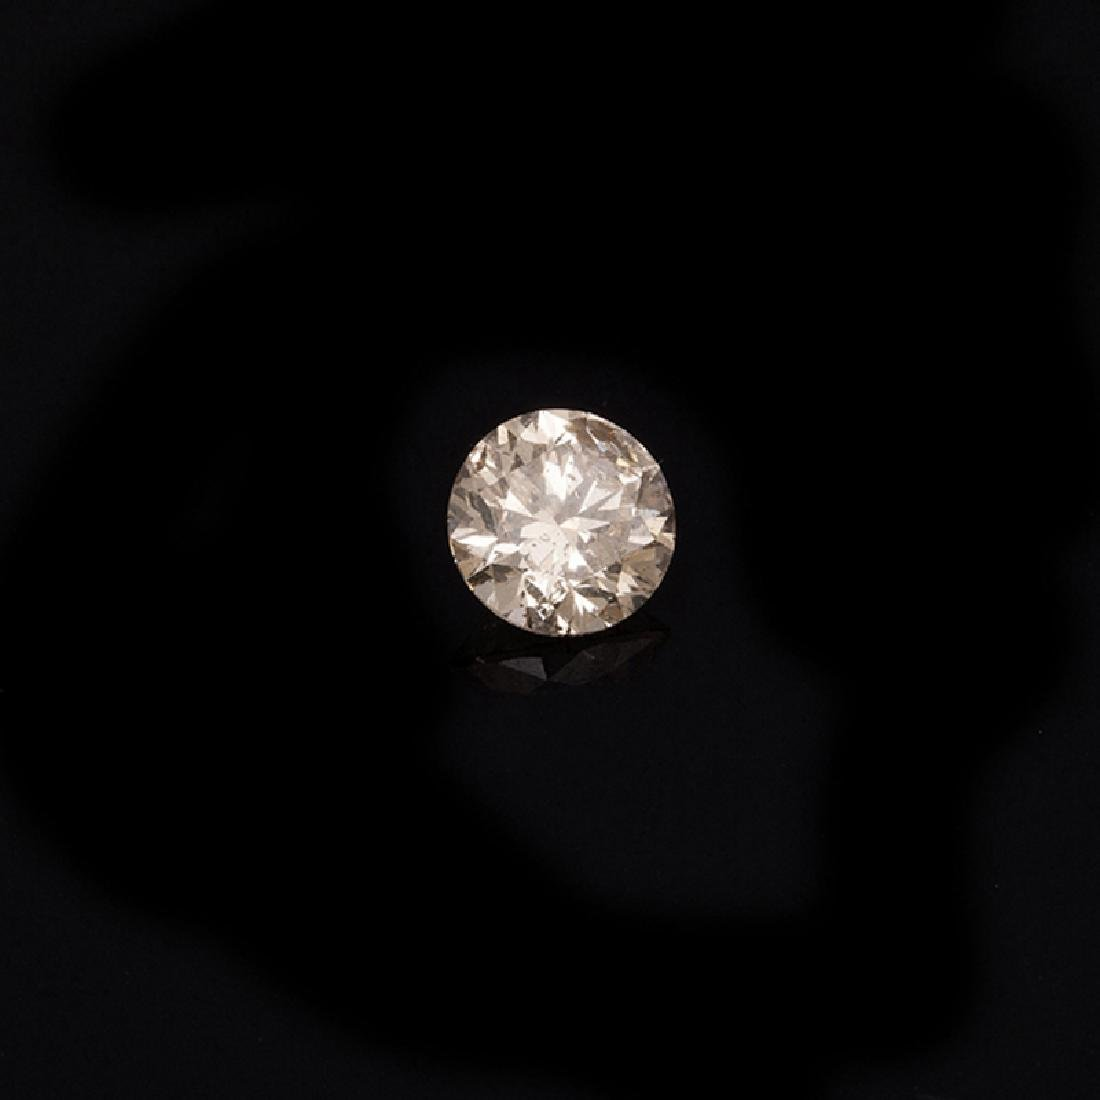 Fine Jewelry GIA Certified 0.26CT Brilliant Round Cut